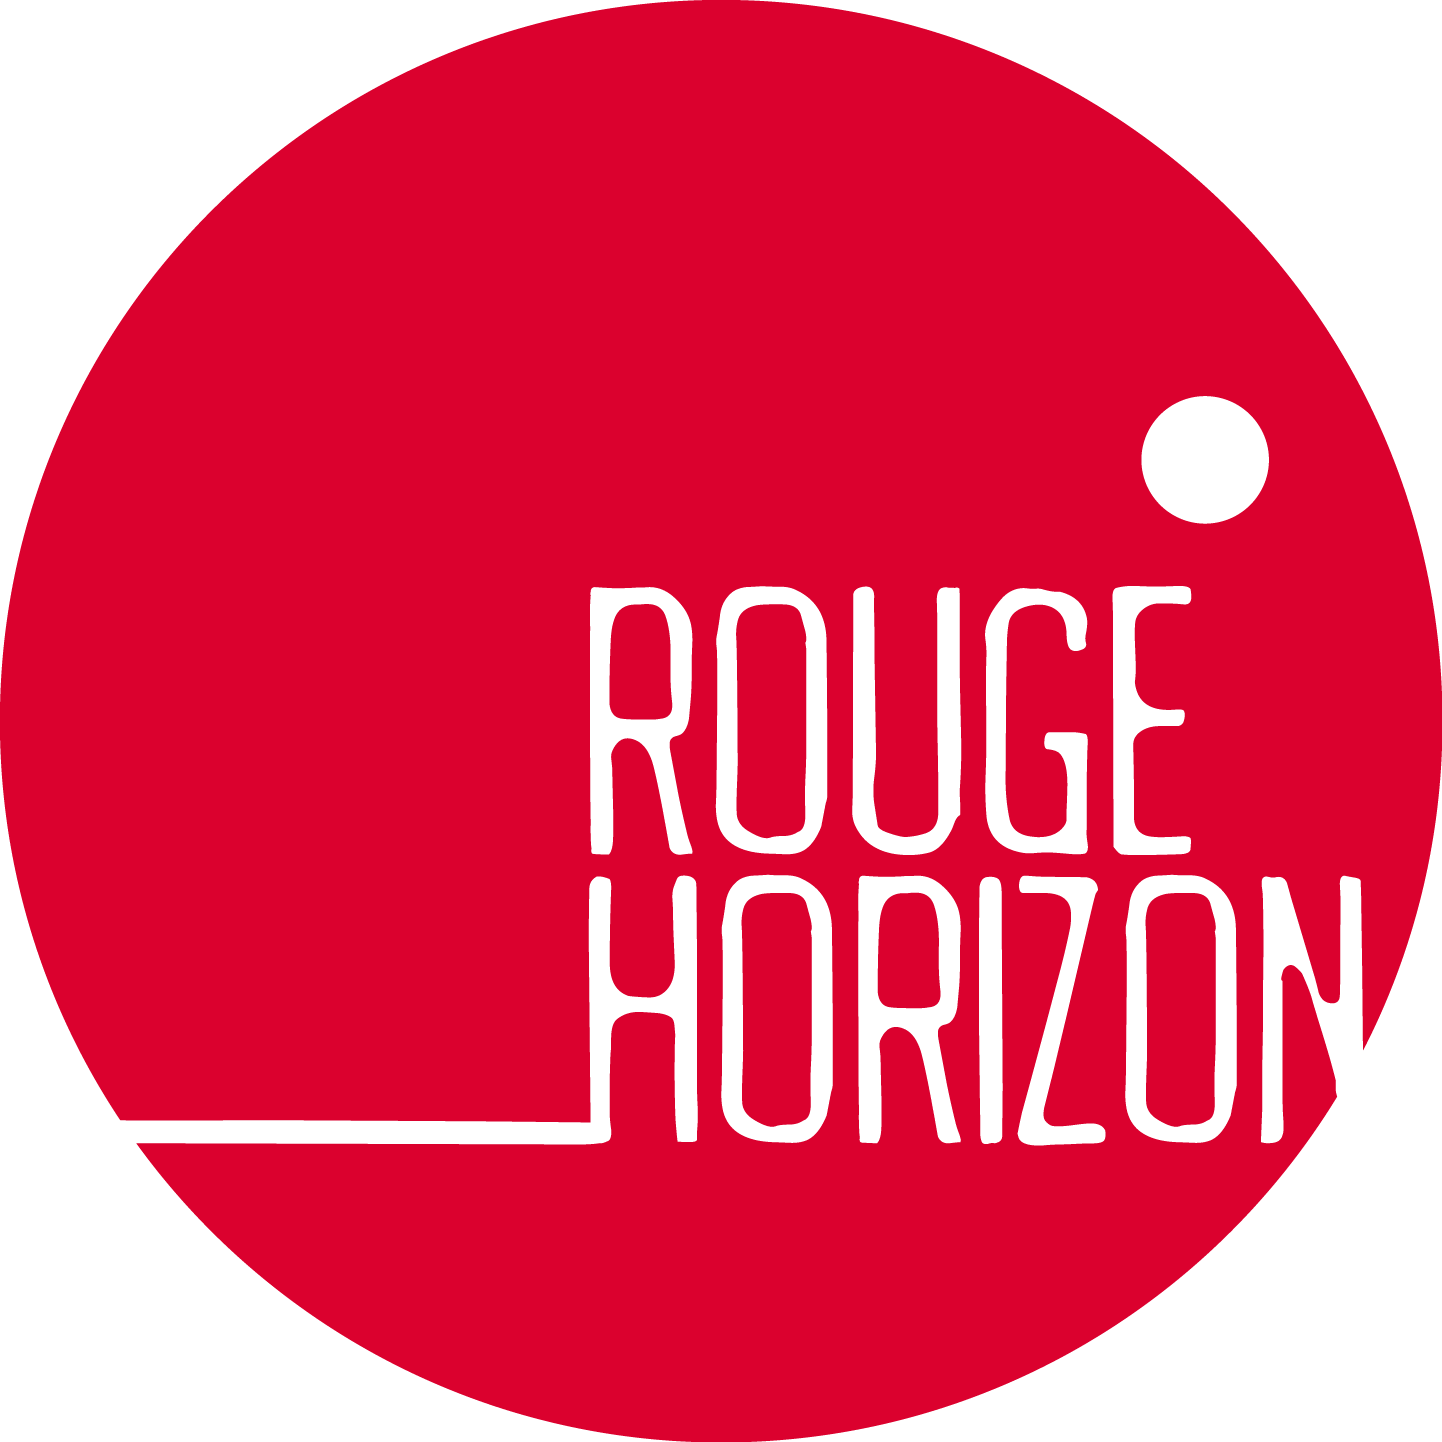 Rouge Horizon E-shop